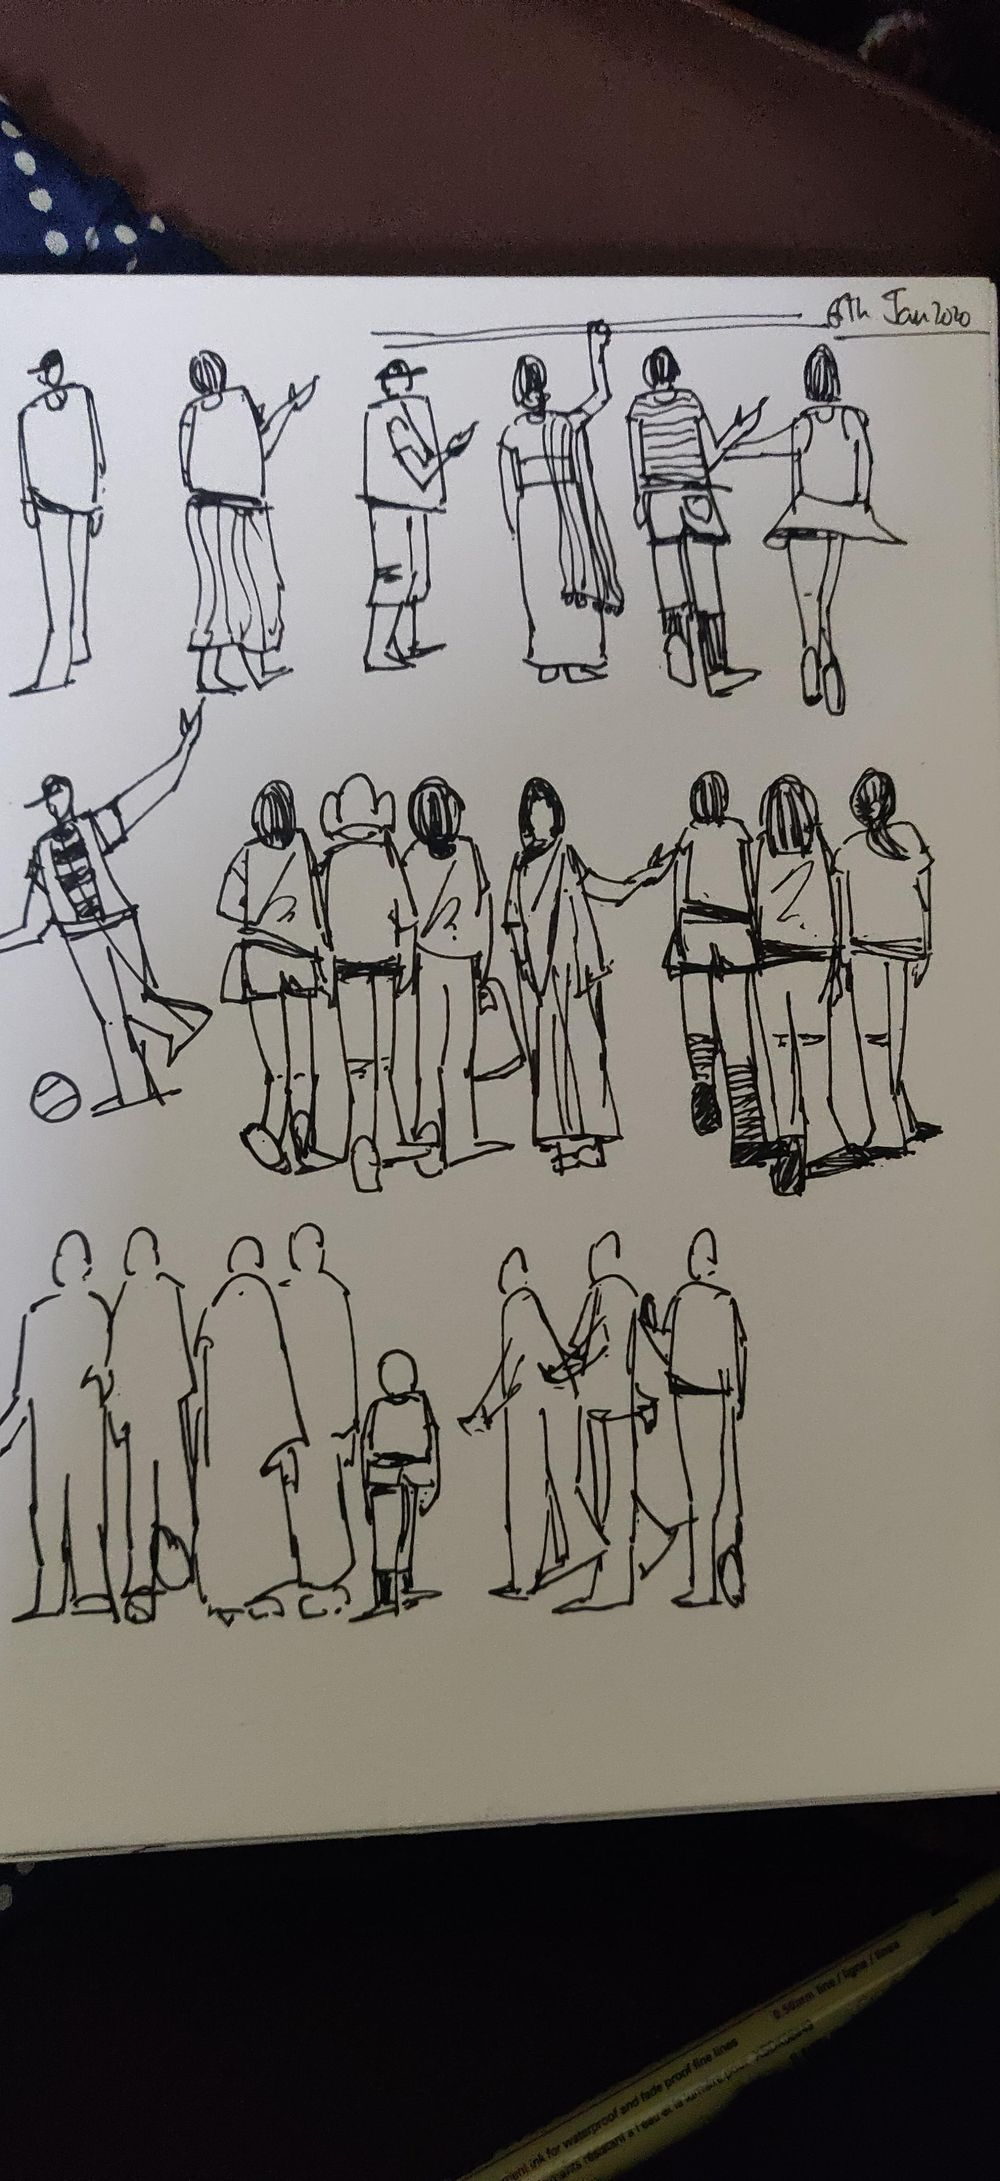 Practice people_1 - image 3 - student project